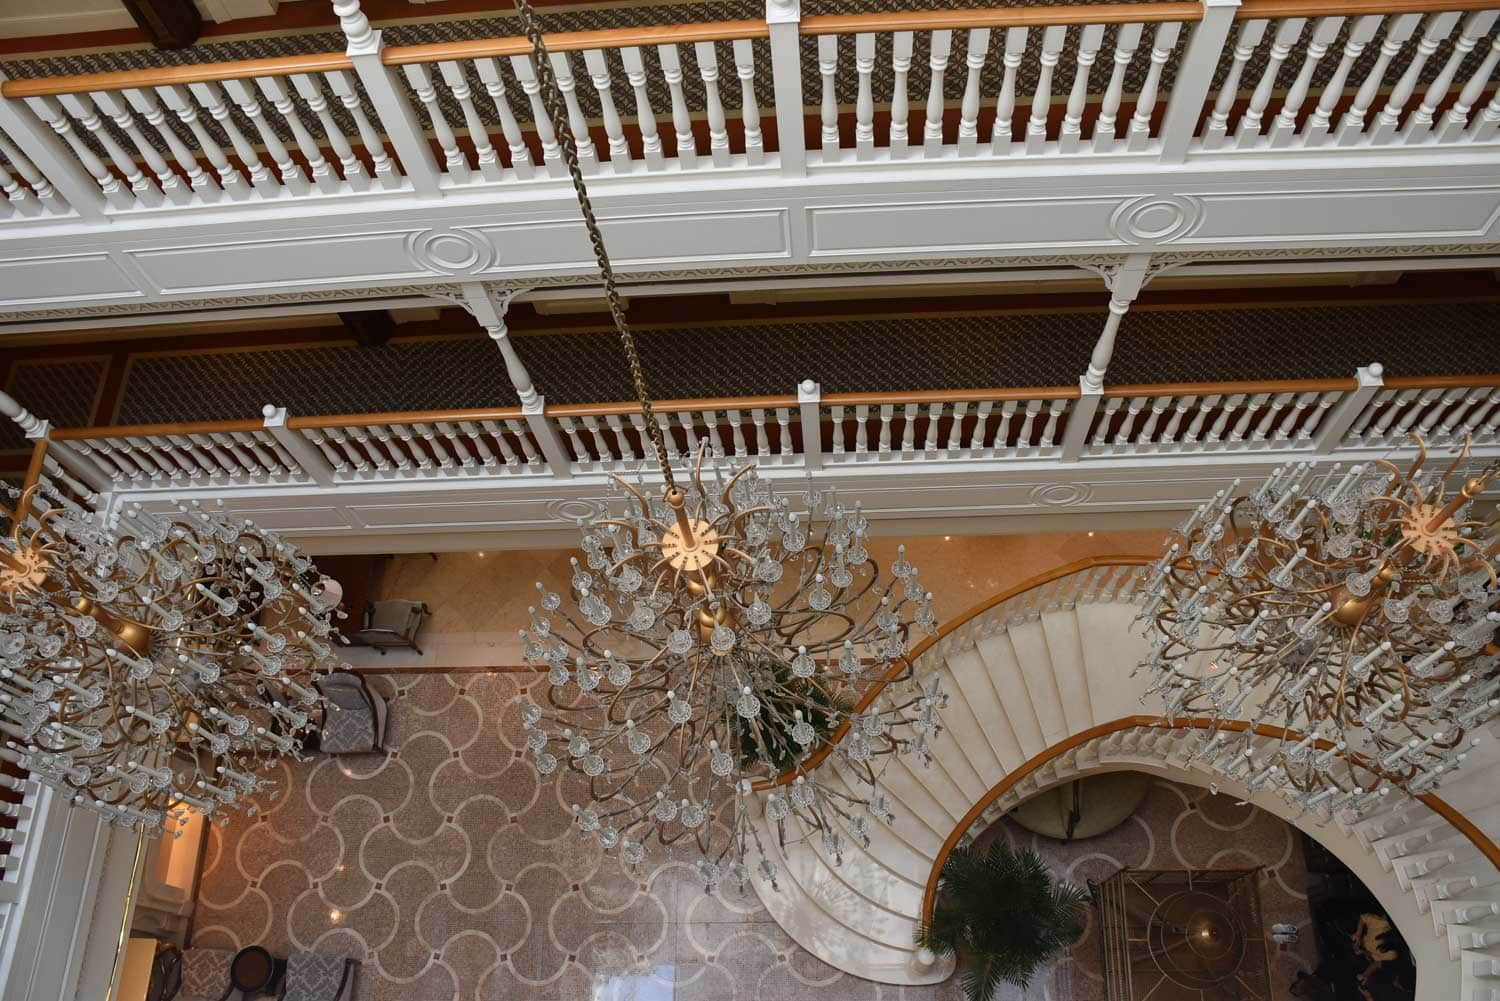 Rocks Hotel chandeliers and staircase